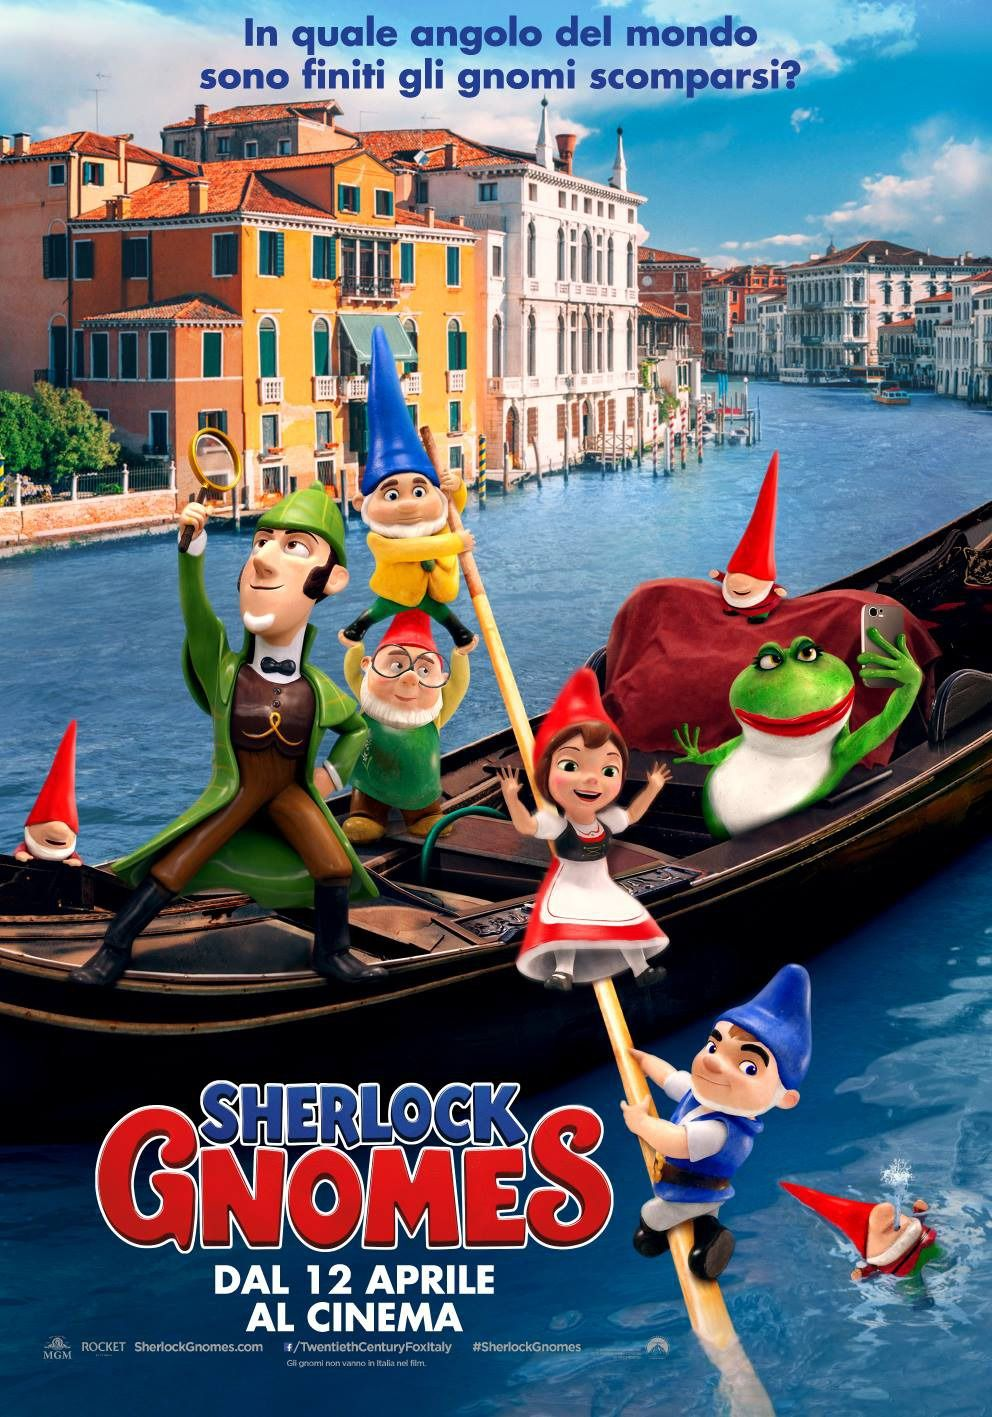 Sherlock Gnomes New Film Posters Https Teaser Trailer Com Movie Gnomeo And Juliet 2 Gnomeoandjuliet Sherlockgn Animated Movie Posters Sherlock Gnomes